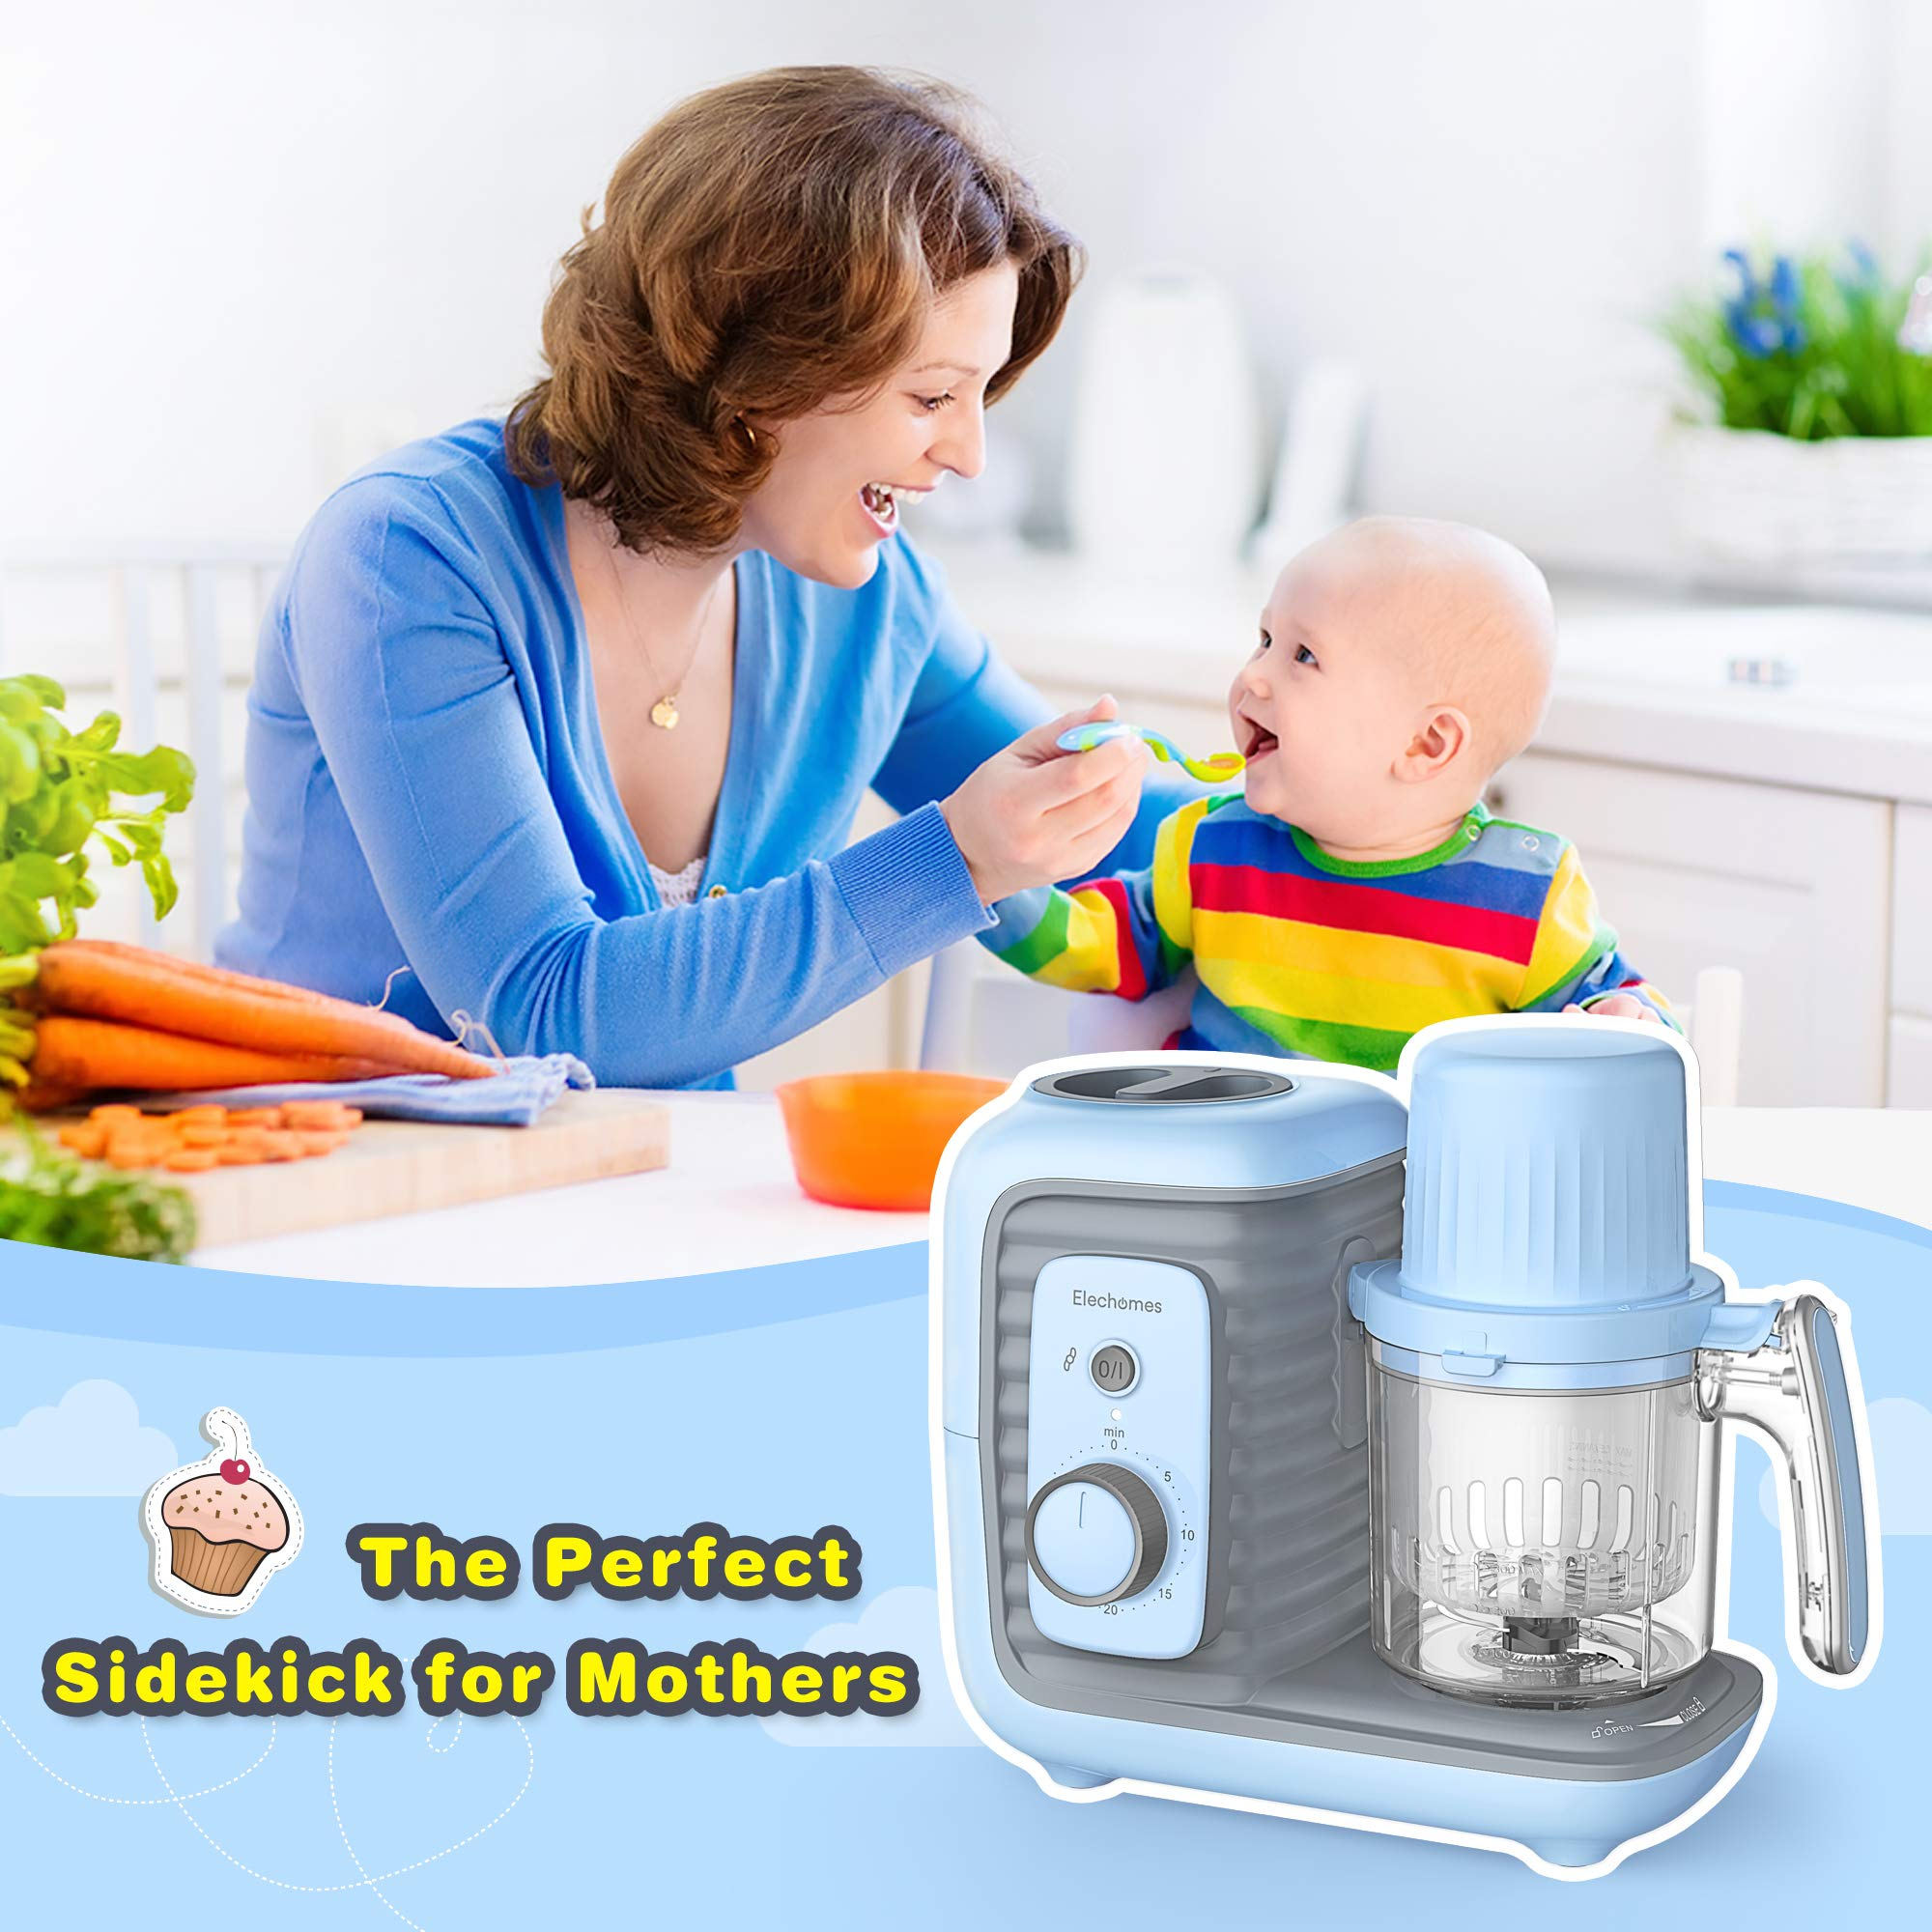 Elechomes Baby Food Maker Processor, Double Steam Basket Cooker with Timer, Blender, Steamer for Baby Infants Toddlers Food by Elechomes (Image #6)